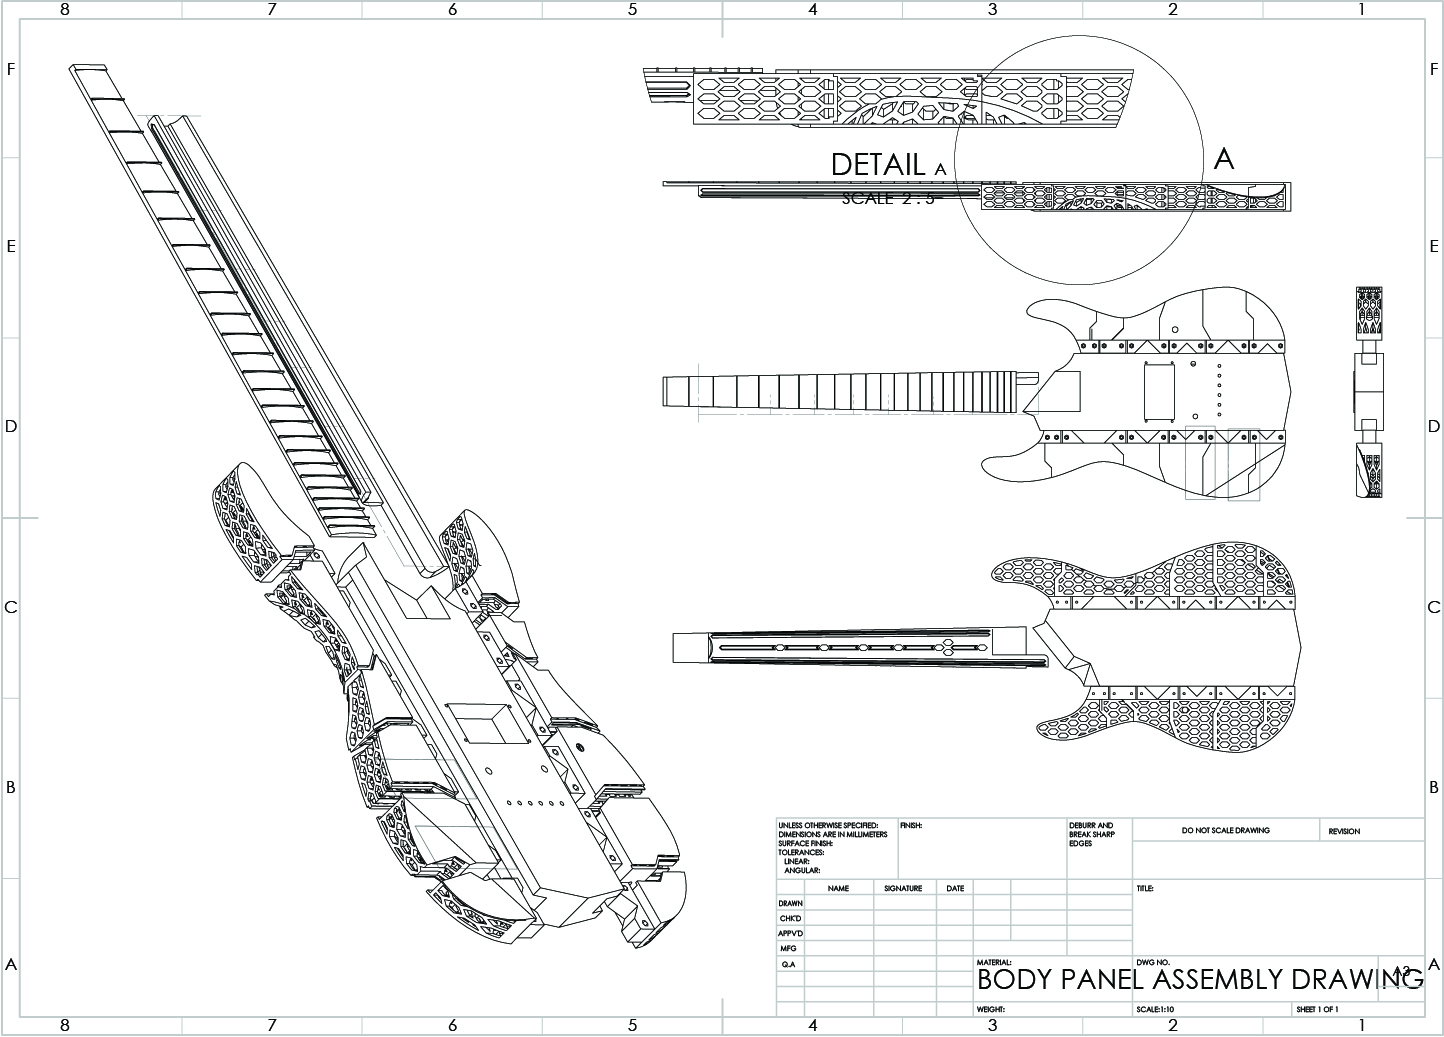 working CAD drawing of an experimental 3d printed guitar